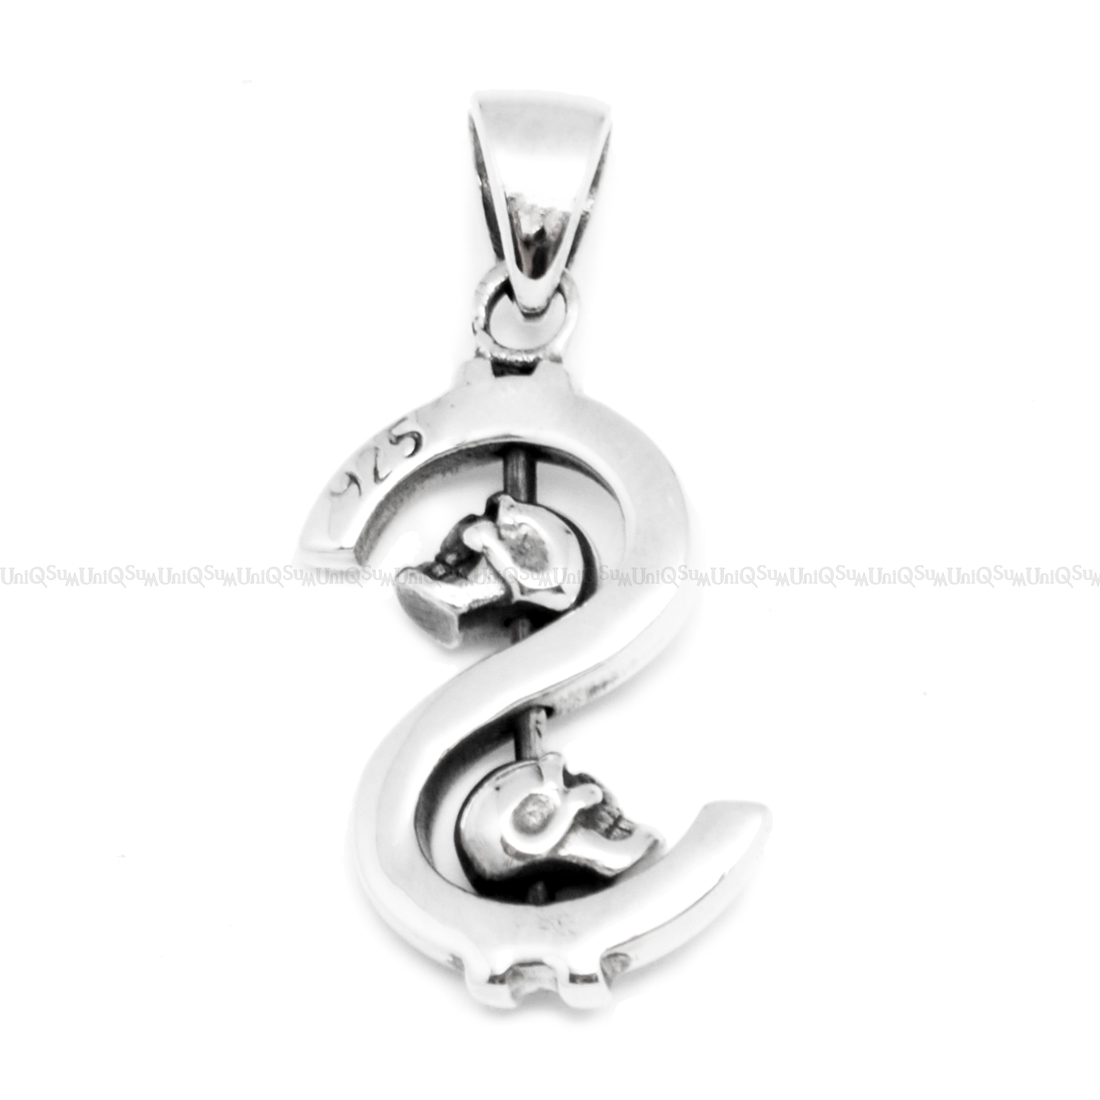 Dollar sign skull 925 sterling silver pendant uniqsum skull pendant dollar skull sterling silver pendants for mens necklaces aloadofball Image collections